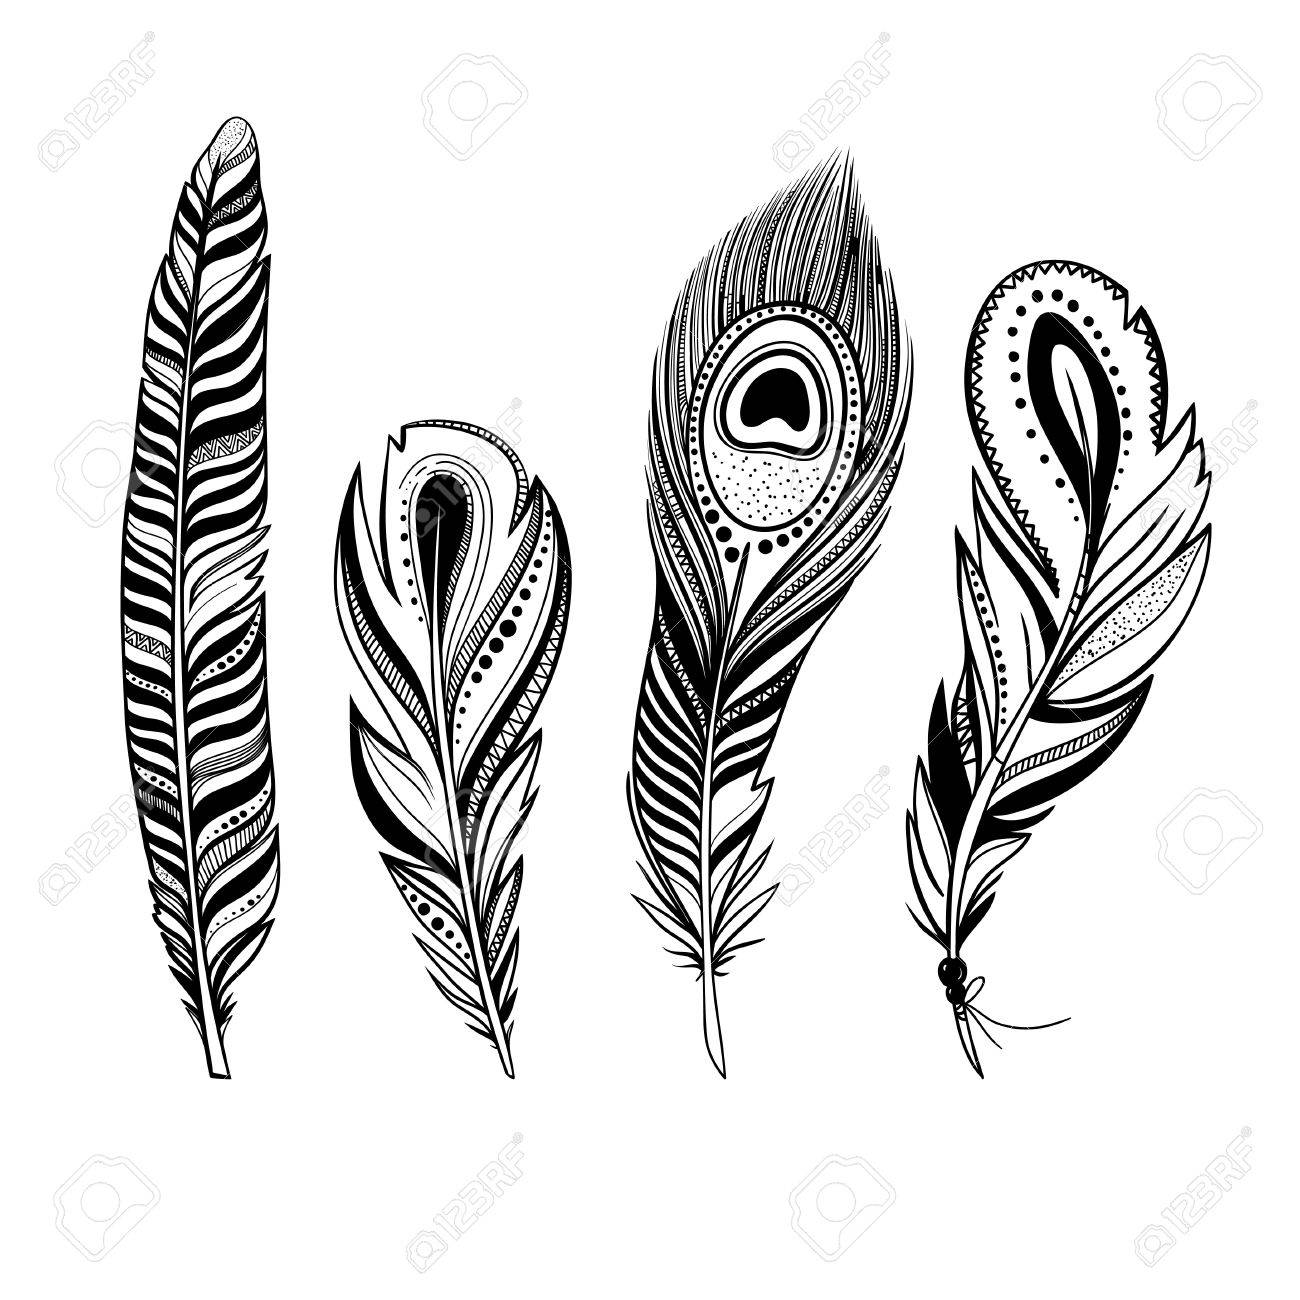 Bird Feathers Drawing At GetDrawings